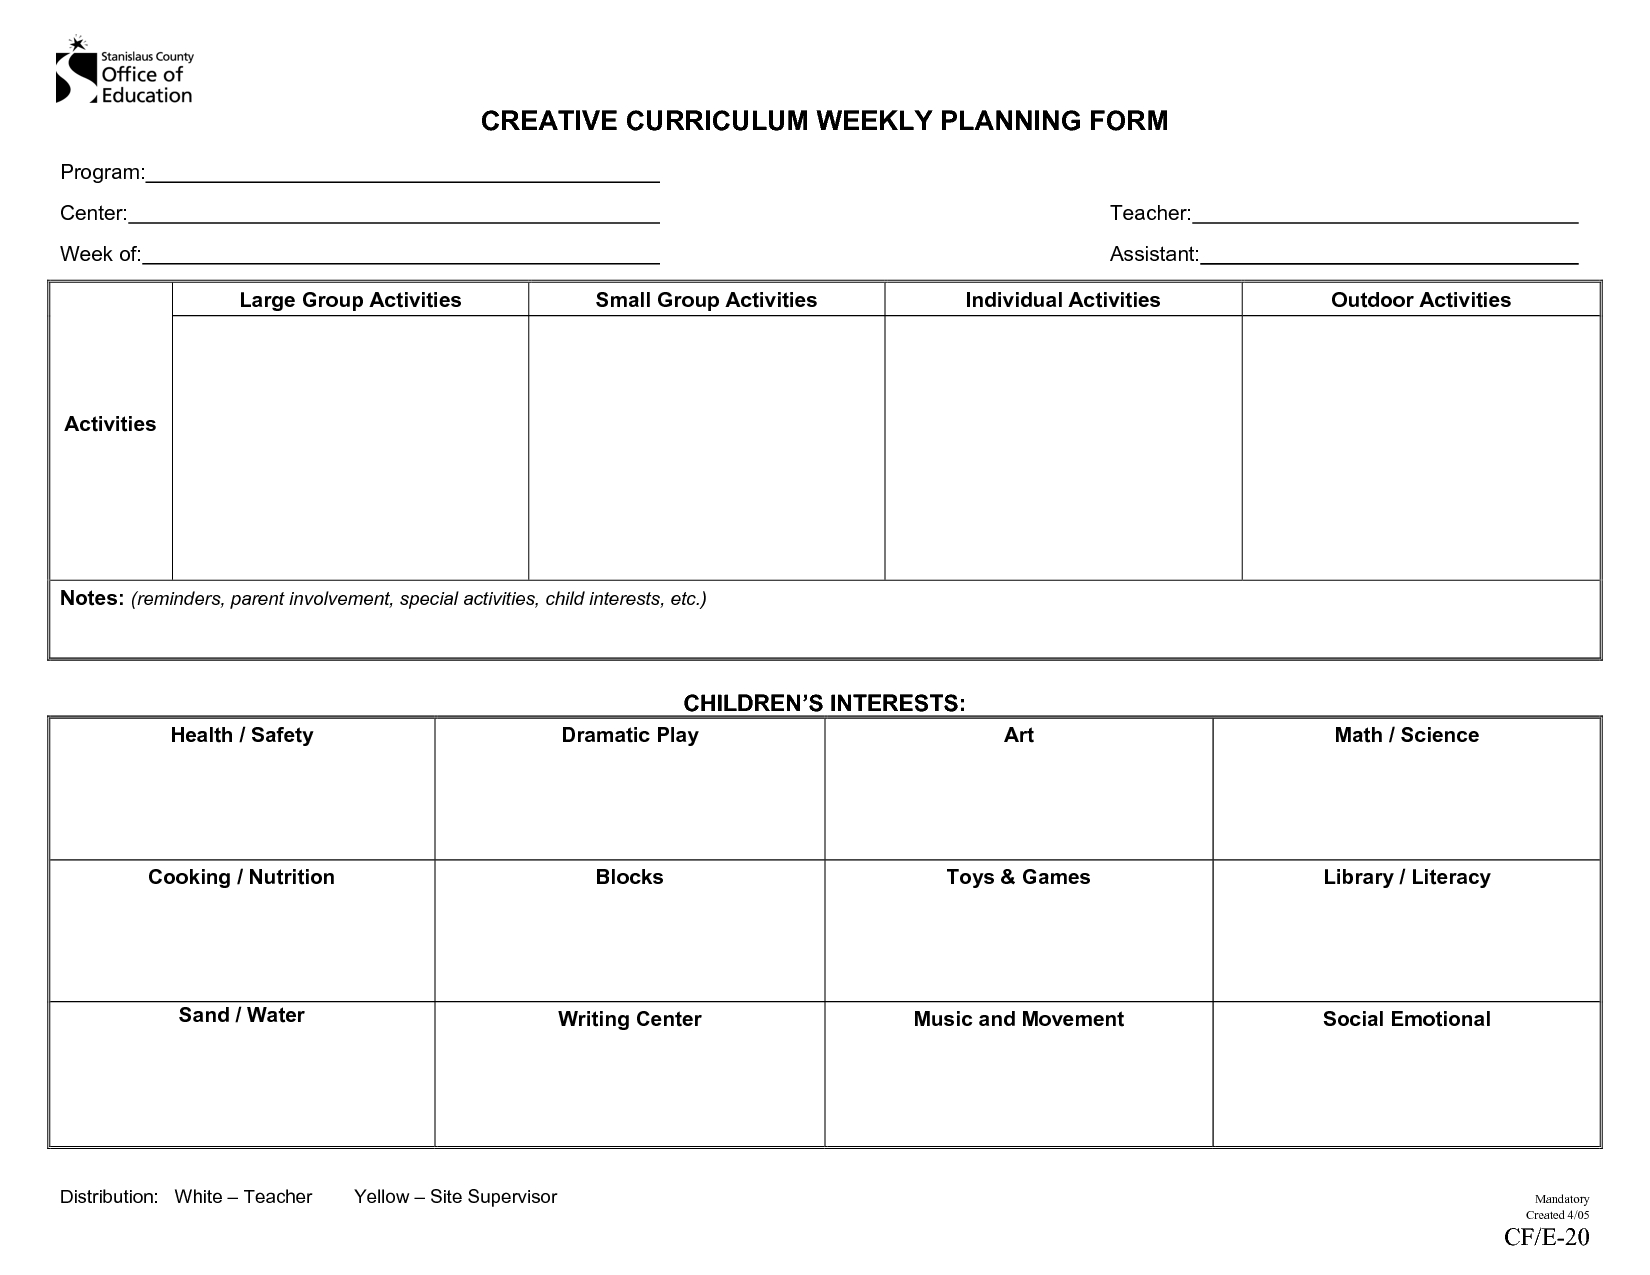 Creative Curriculum | Creative Curriculum Weekly Planning